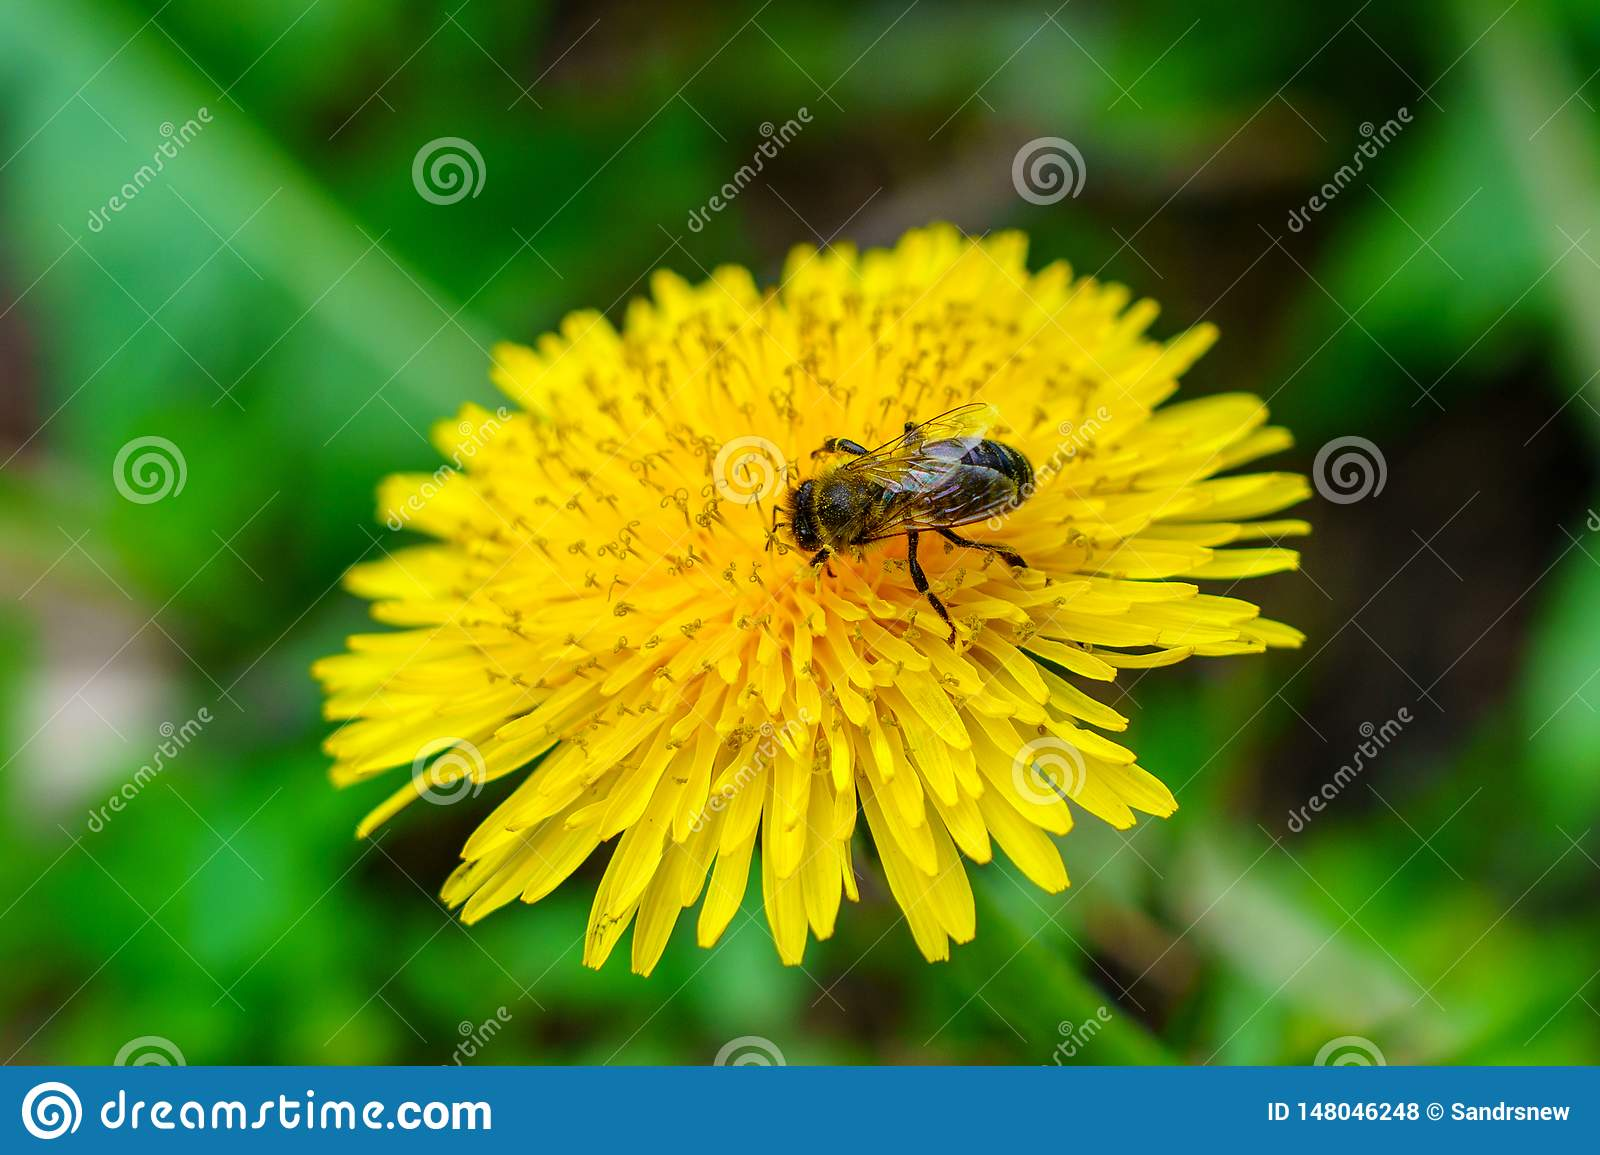 Yellow Dandelion In Green Grass, The Bee On The Flower ...